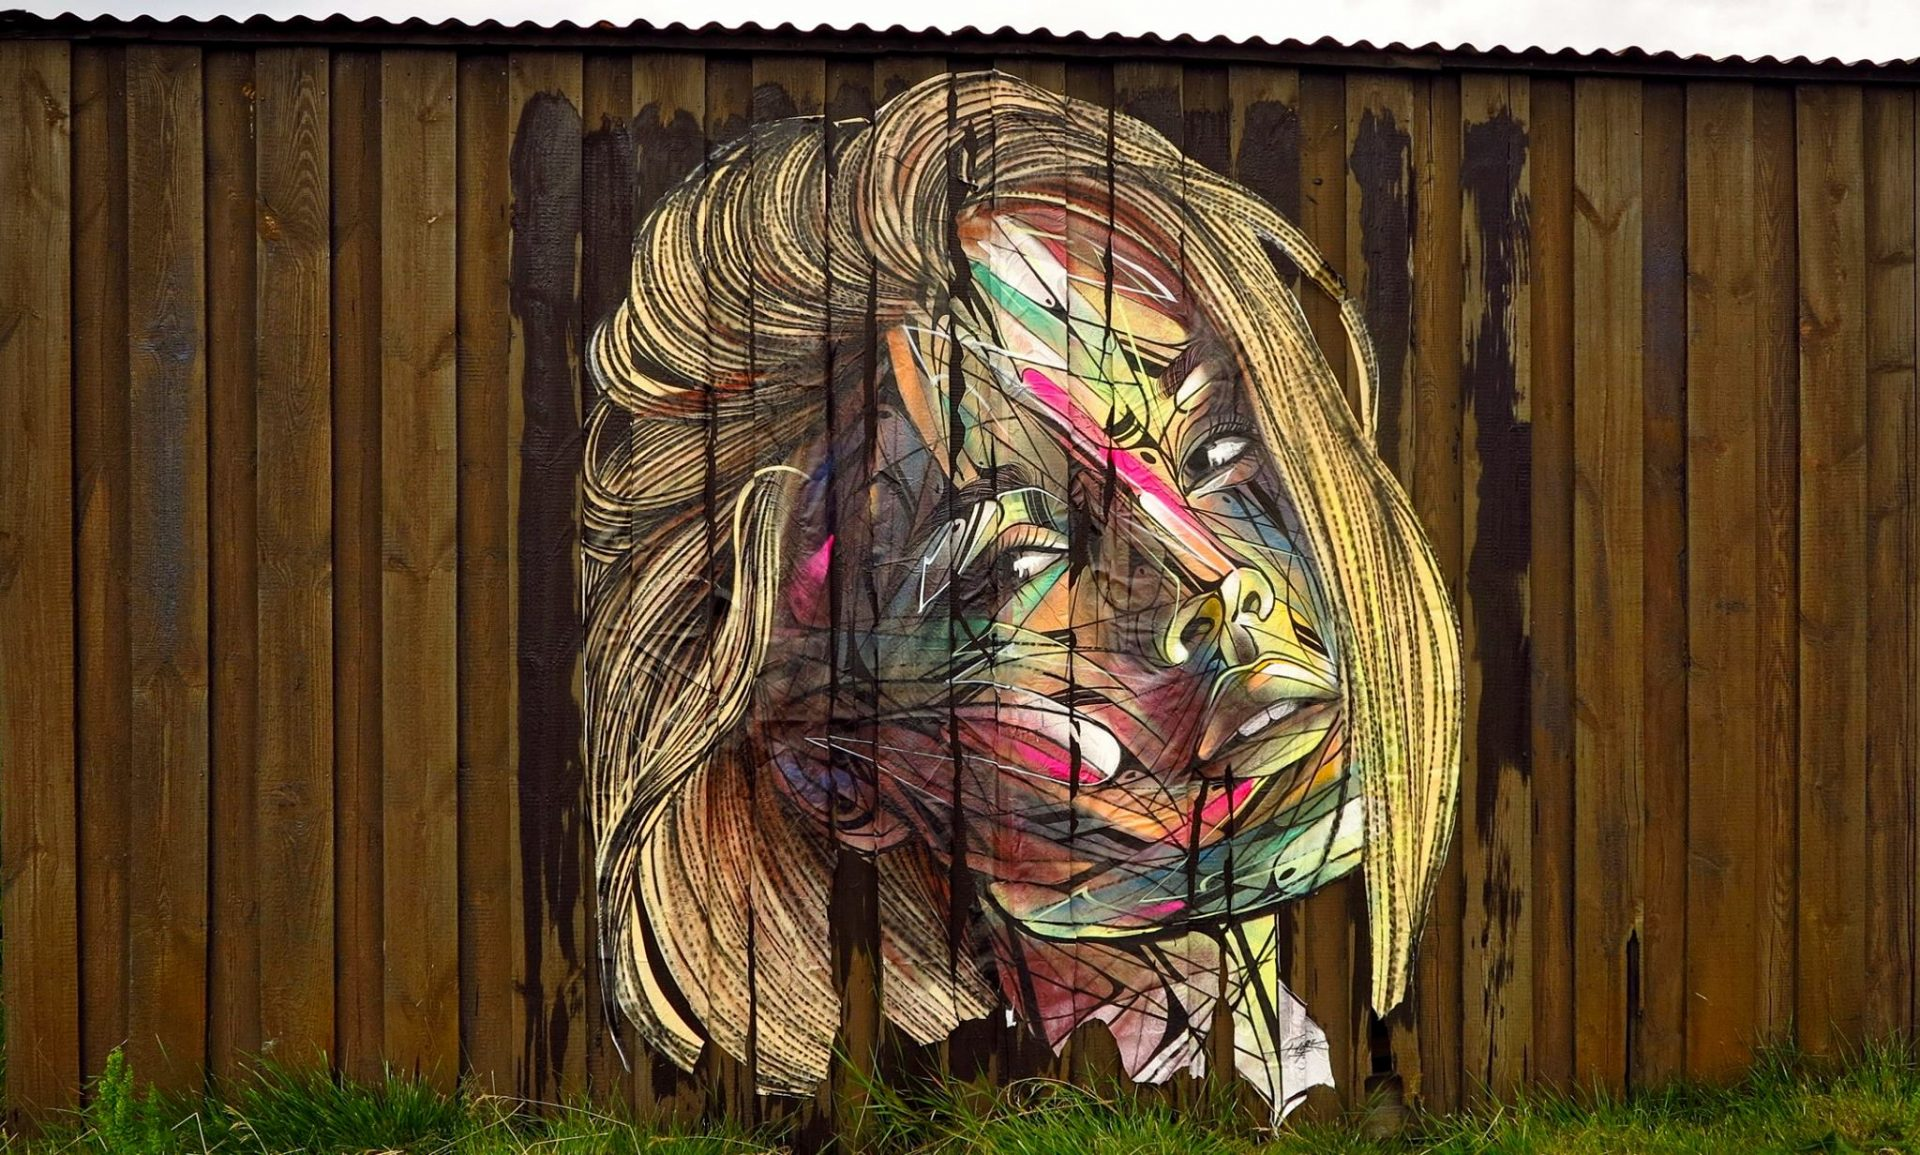 Hopare in Iceland